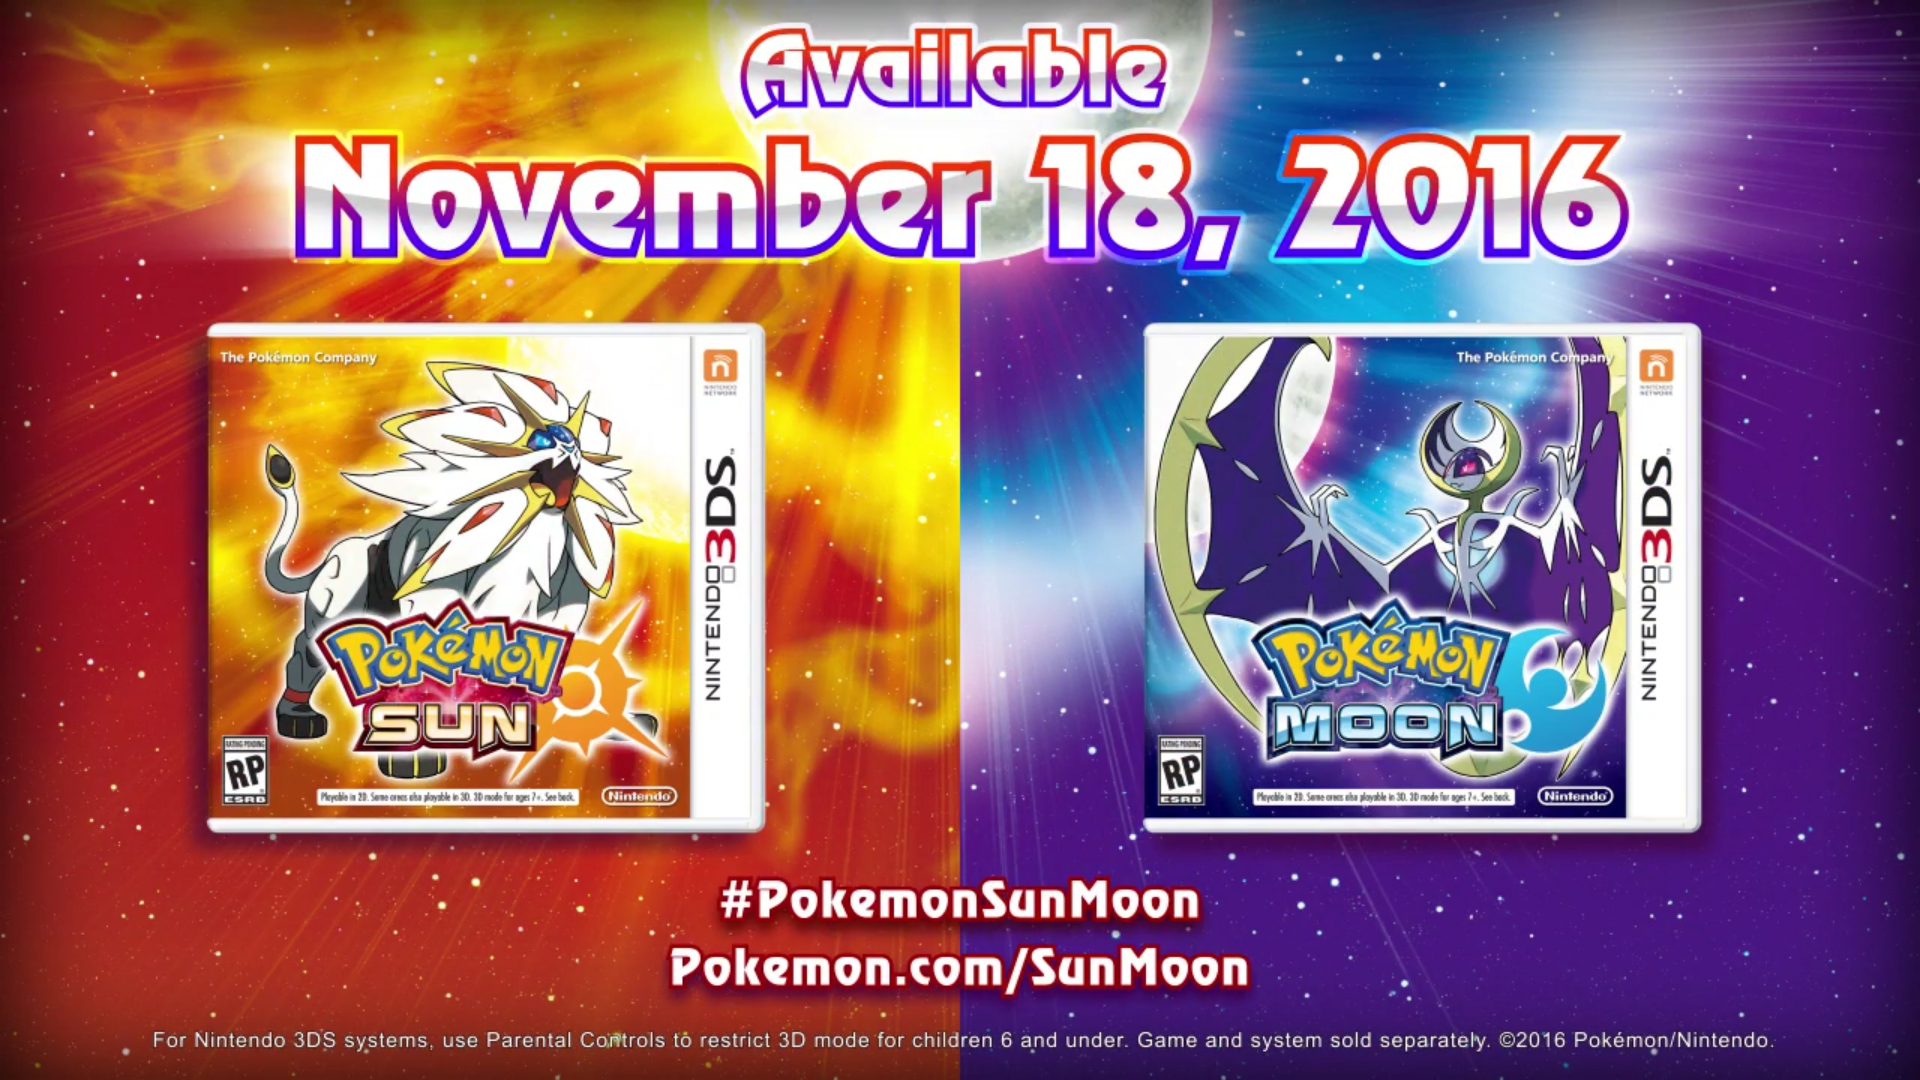 New Pokemon Sun & Moon Trailer Shows Off Legendary Pokemon